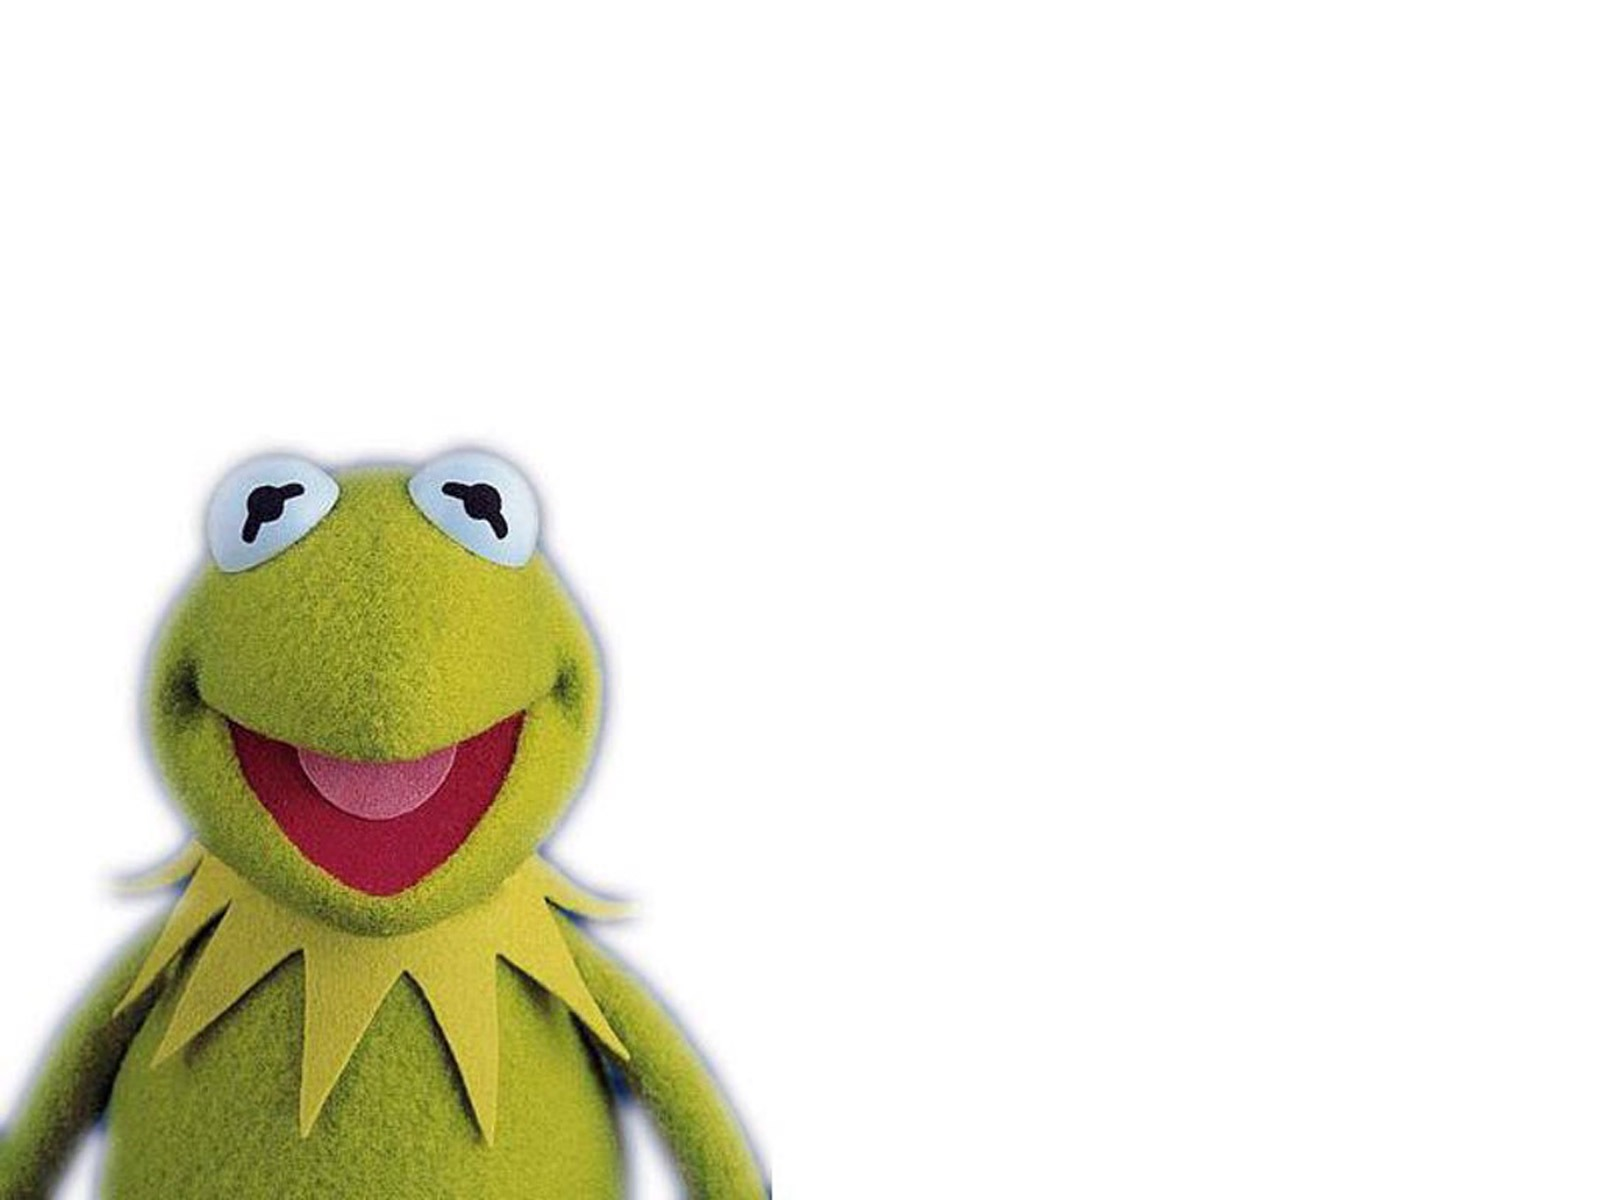 Kermit The Frog Wallpaper 1600x1200 Kermit The Frog With